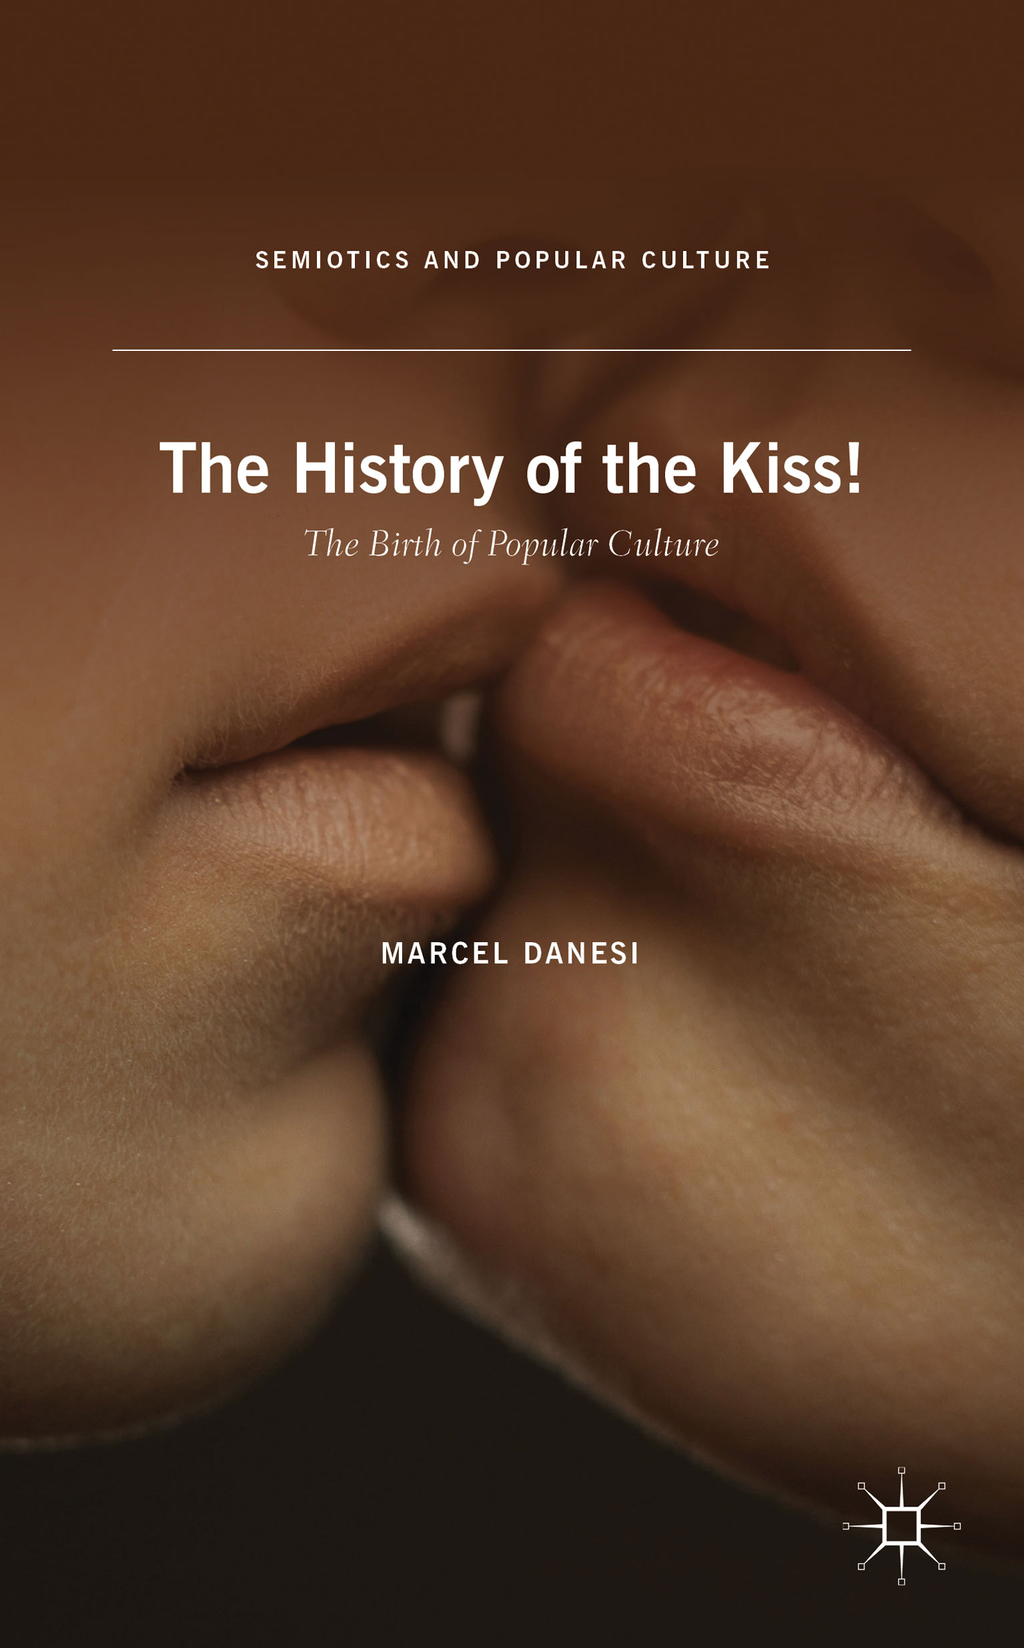 The History of the Kiss The Birth of Popular Culture